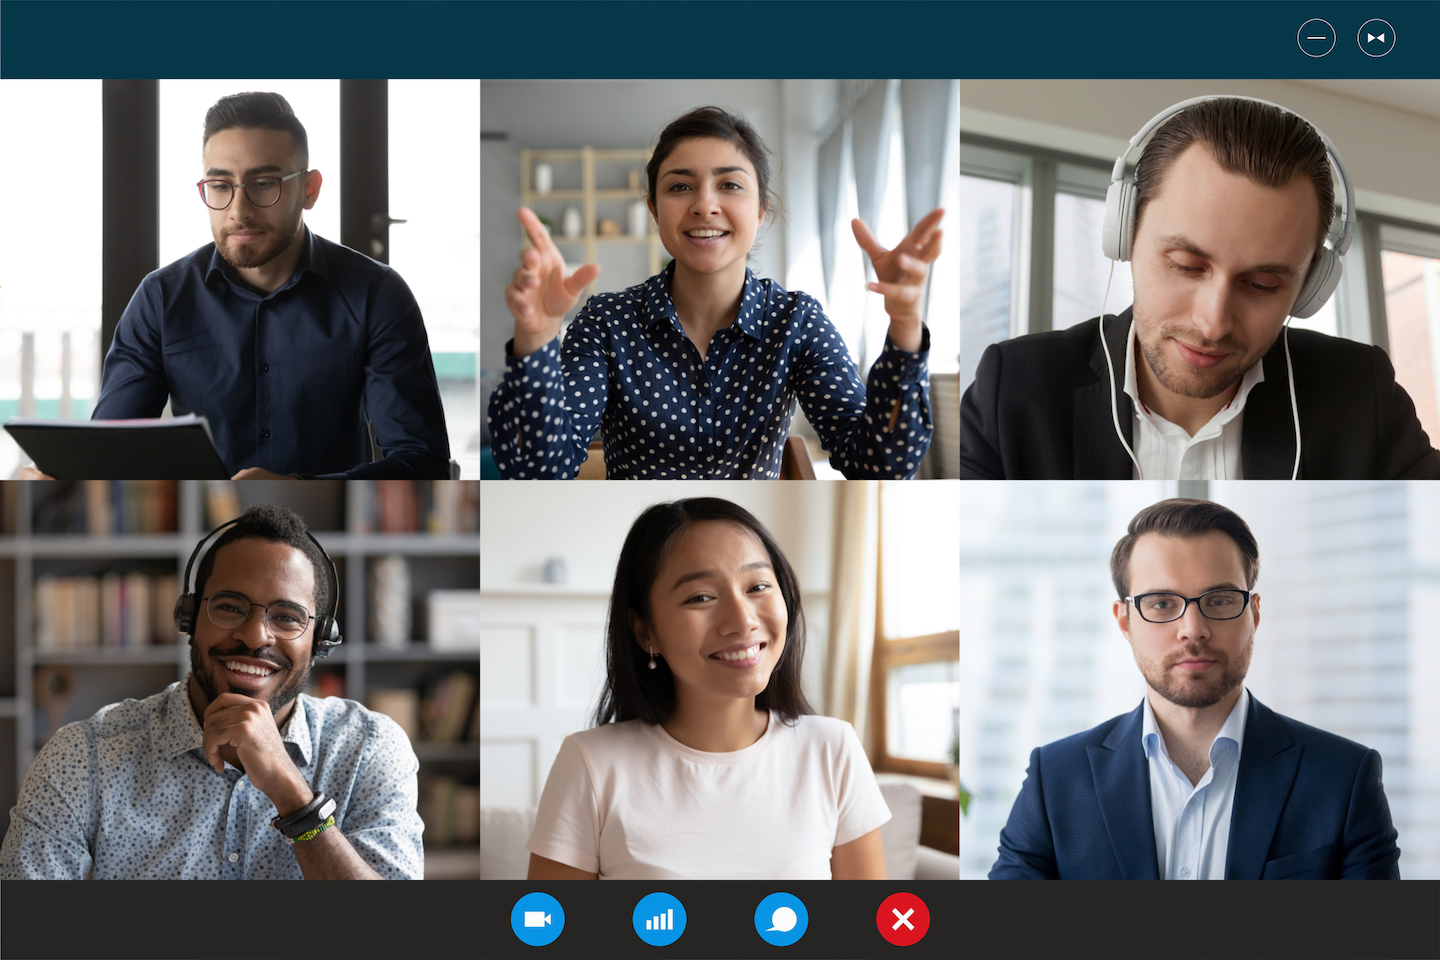 6 (More) Ways to Make Virtual Meetings Engaging